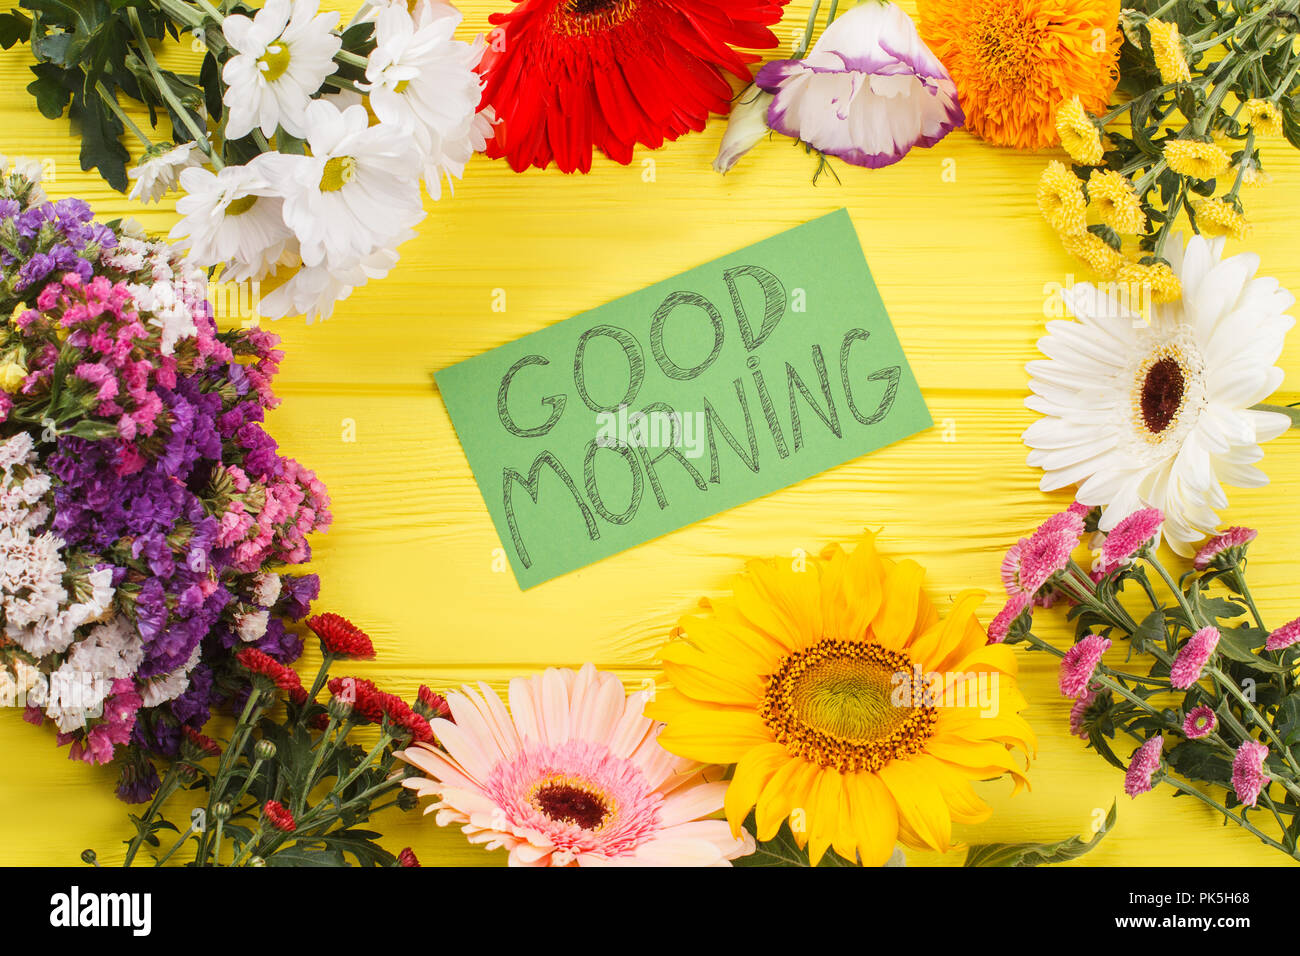 Lovely good morning wish and flowers yellow wooden desk background lovely good morning wish and flowers yellow wooden desk background mightylinksfo